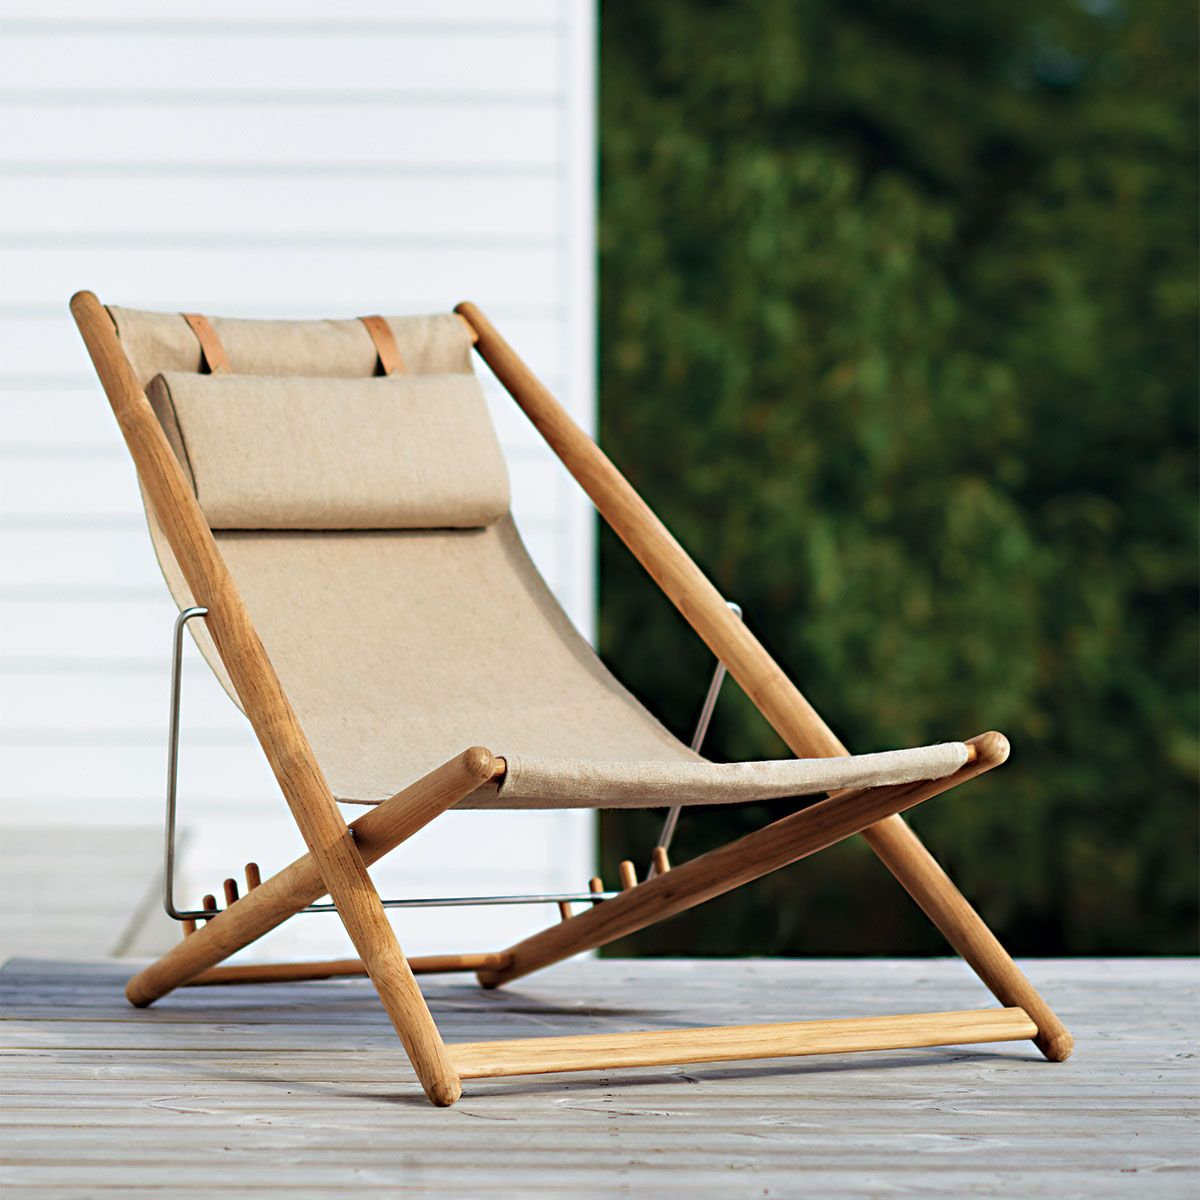 outdoor sling chairs. Teak Adjustable Outdoor Sling Chair In Natural | Ihland Collection Chairs T